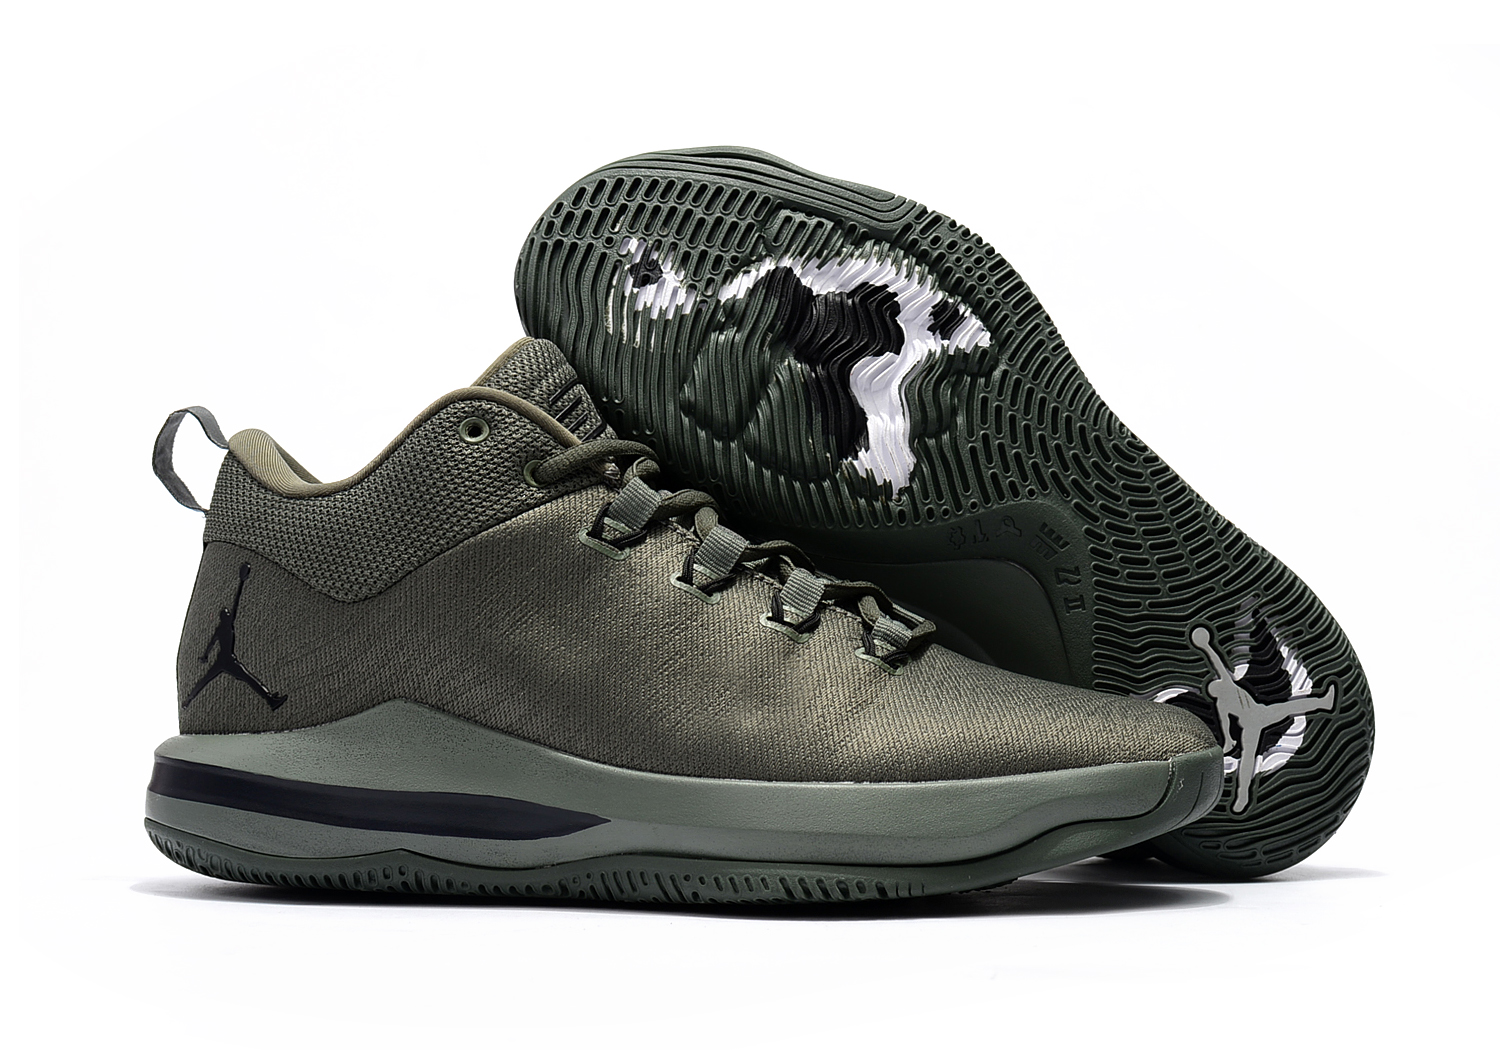 2017 Jordan CP3.X AE River Rock Black-Metallic Silver For Sale